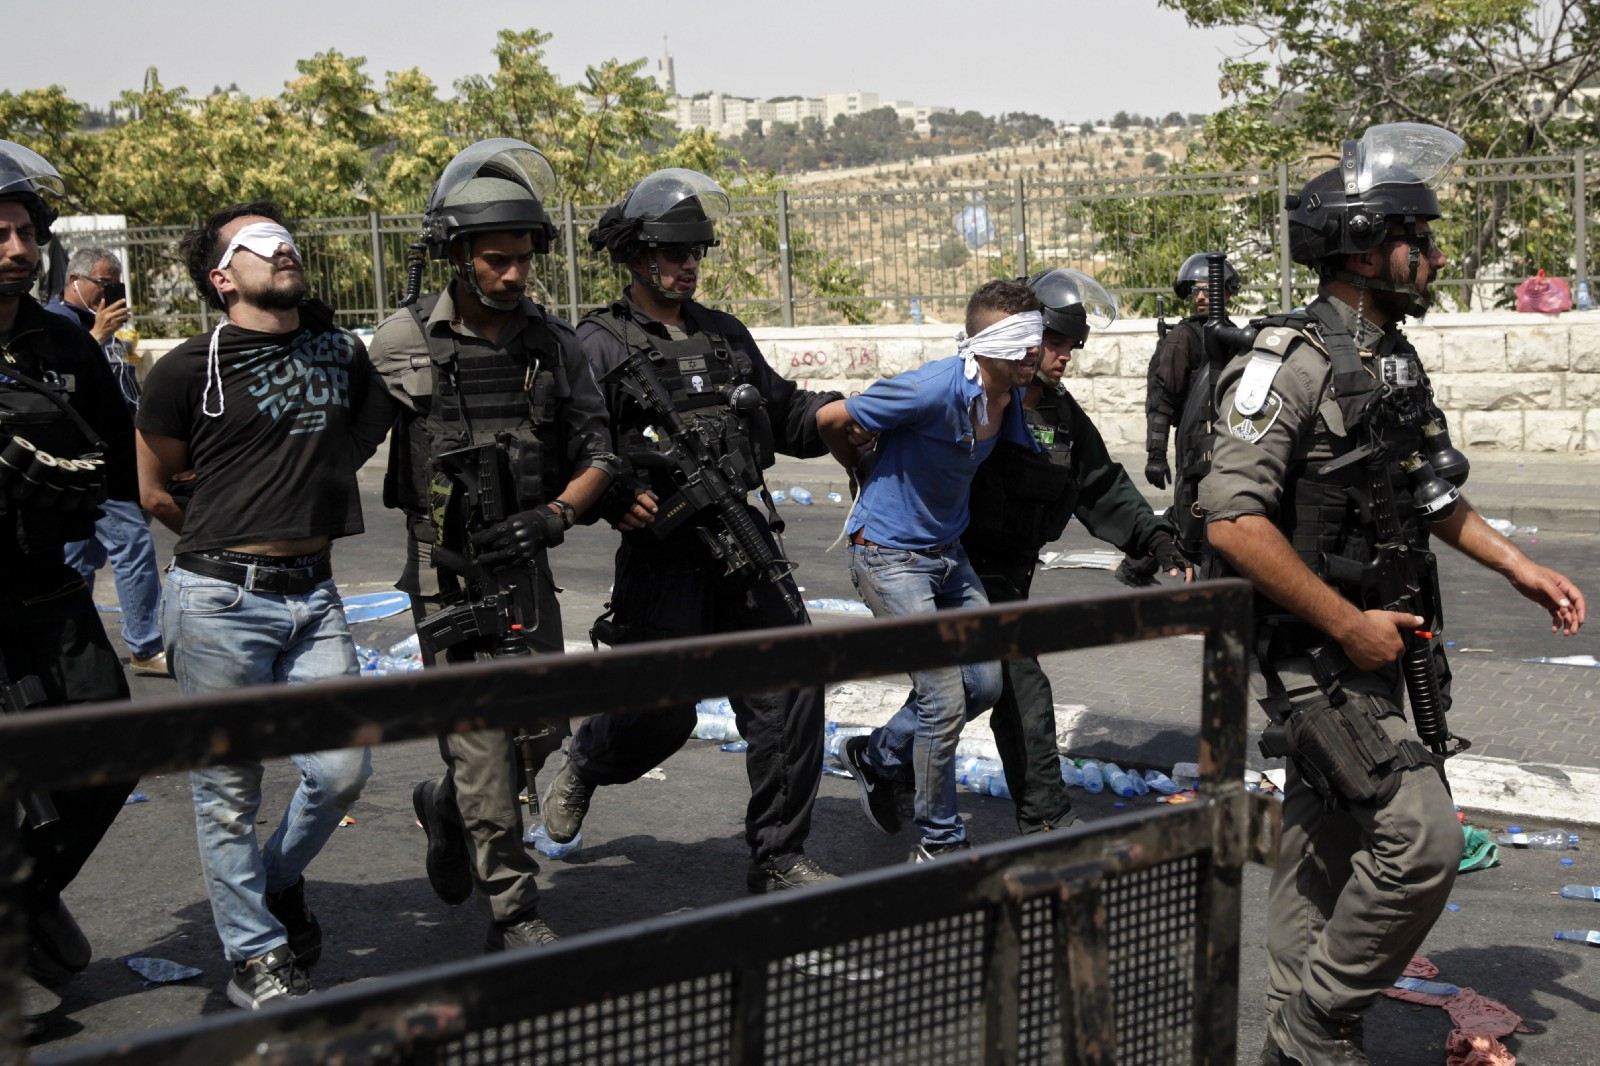 Israel begins removing metal detectors from Al-Aqsa compound: director